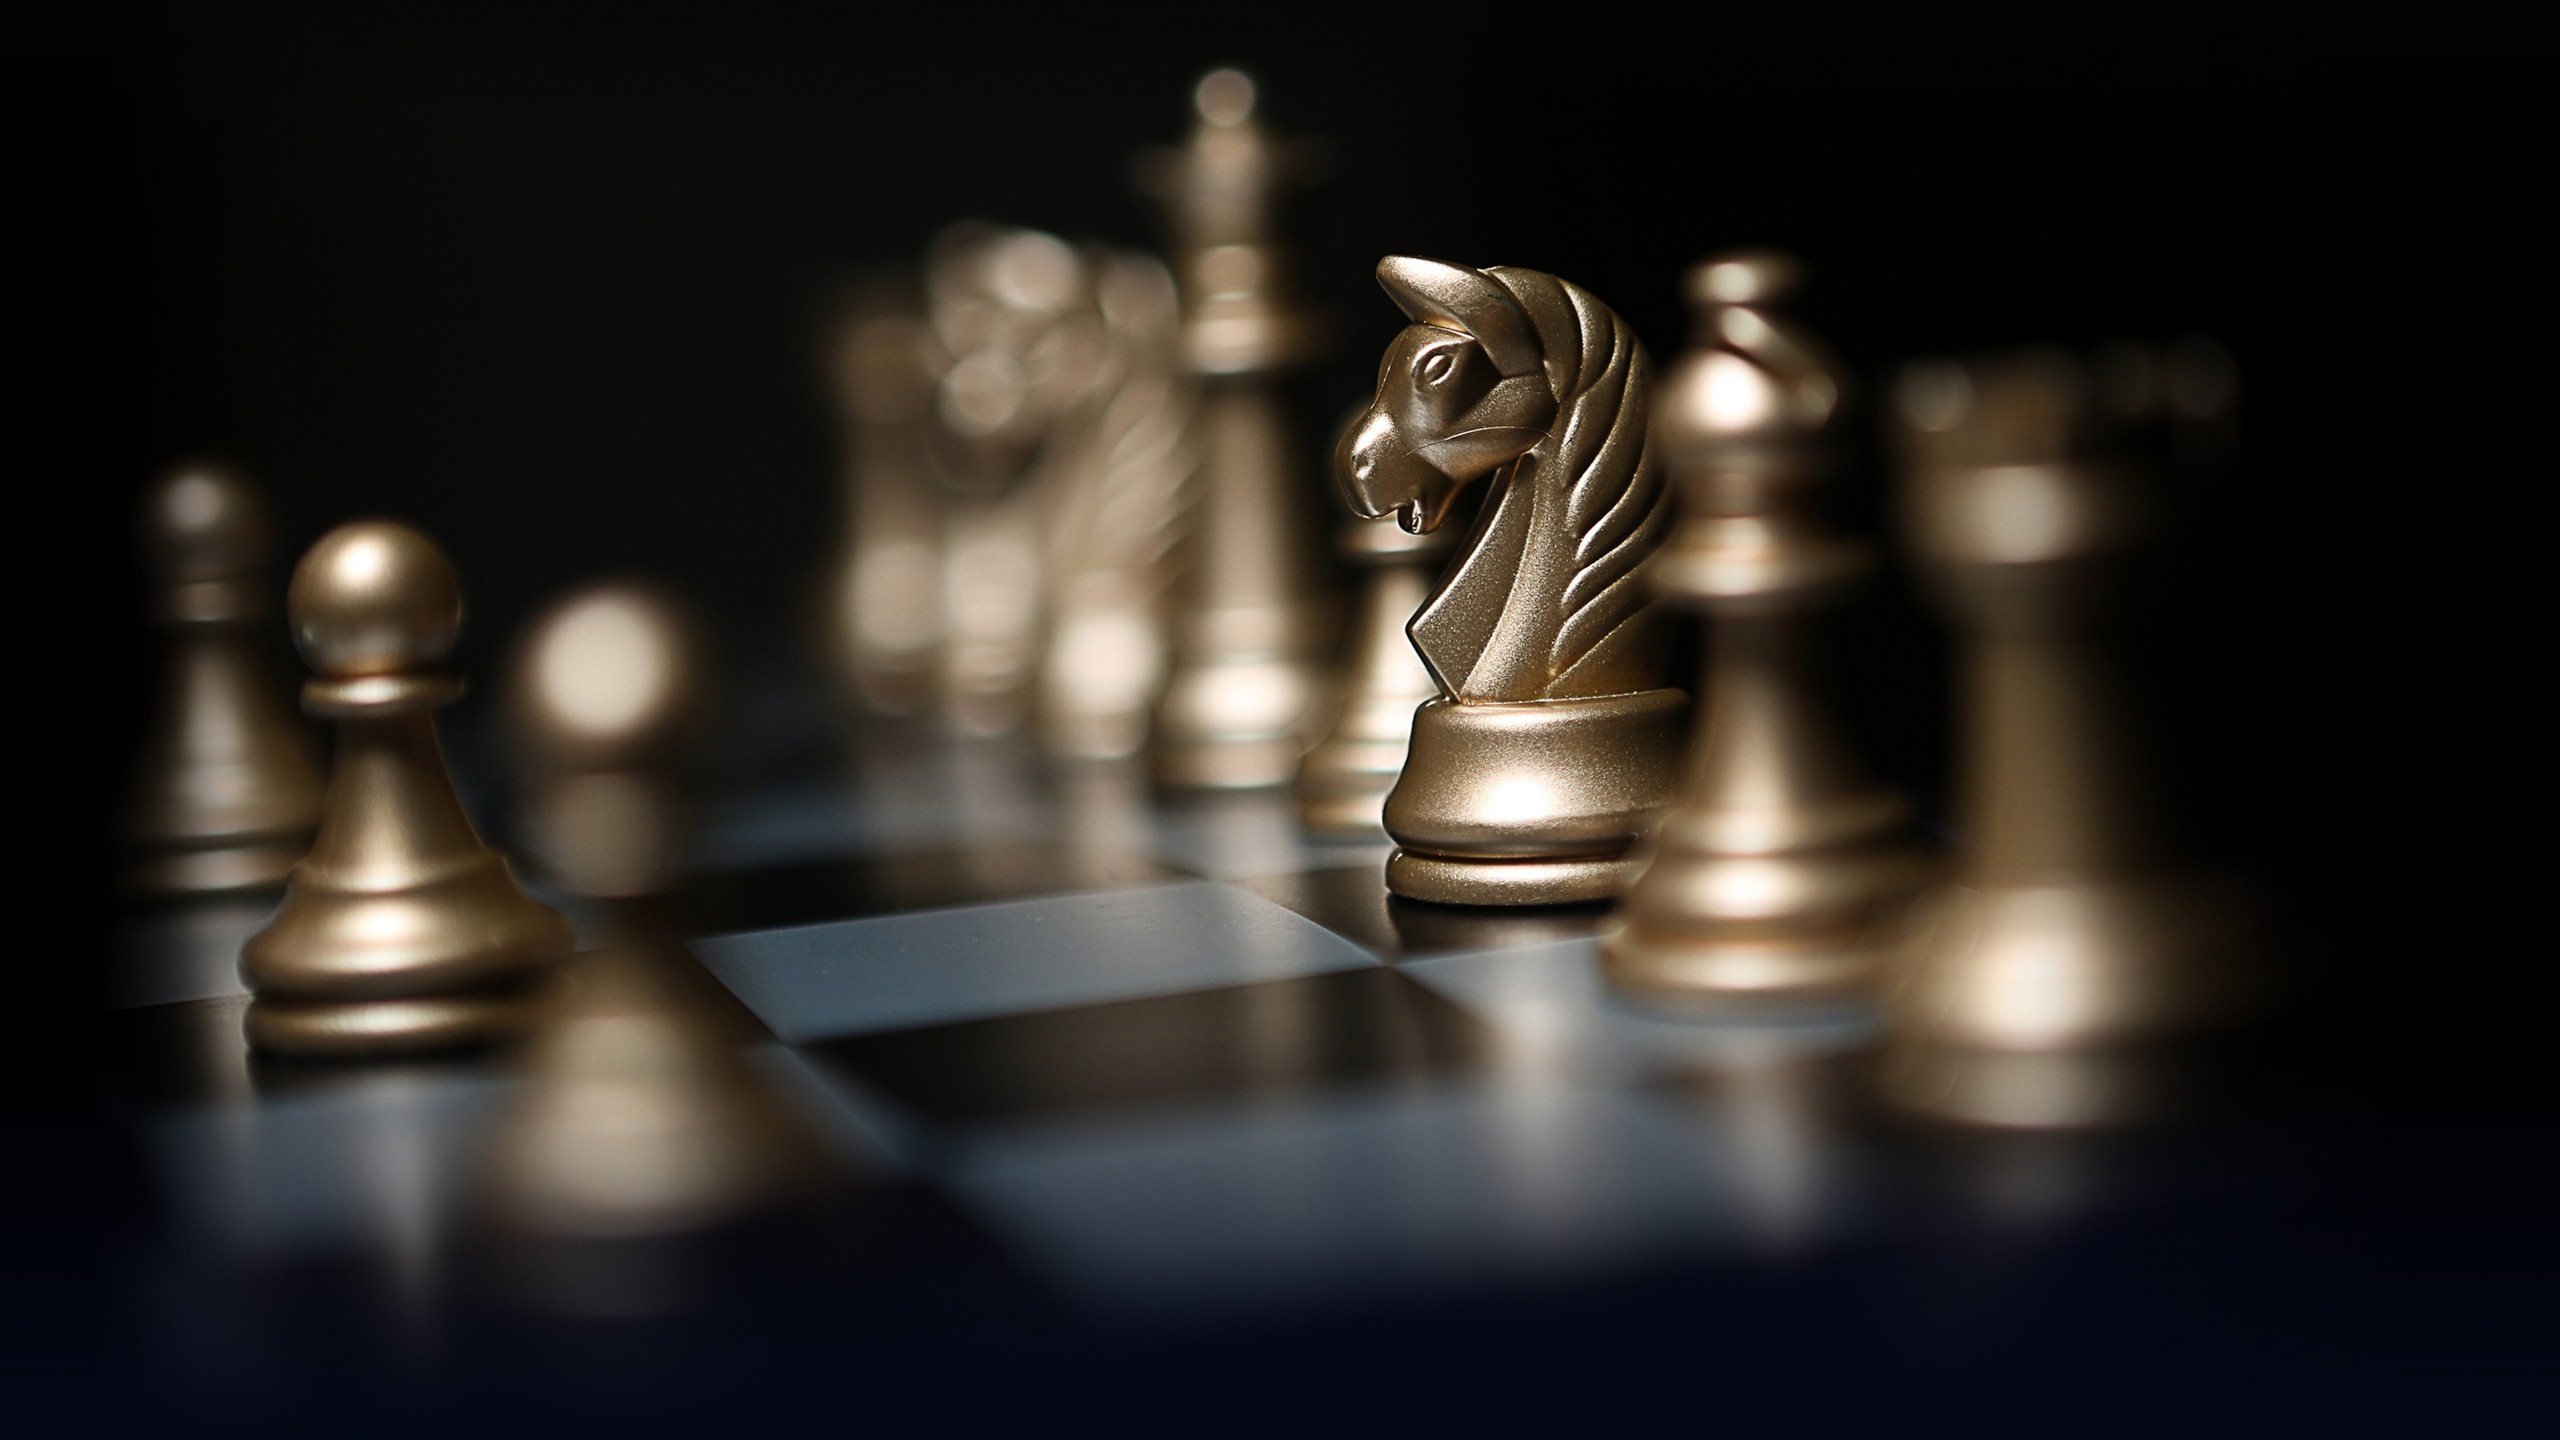 Windows 7 Wallpaper Hd 3d For Desktop Chess Hd Wallpapers Hd Wallpapers Id 22994